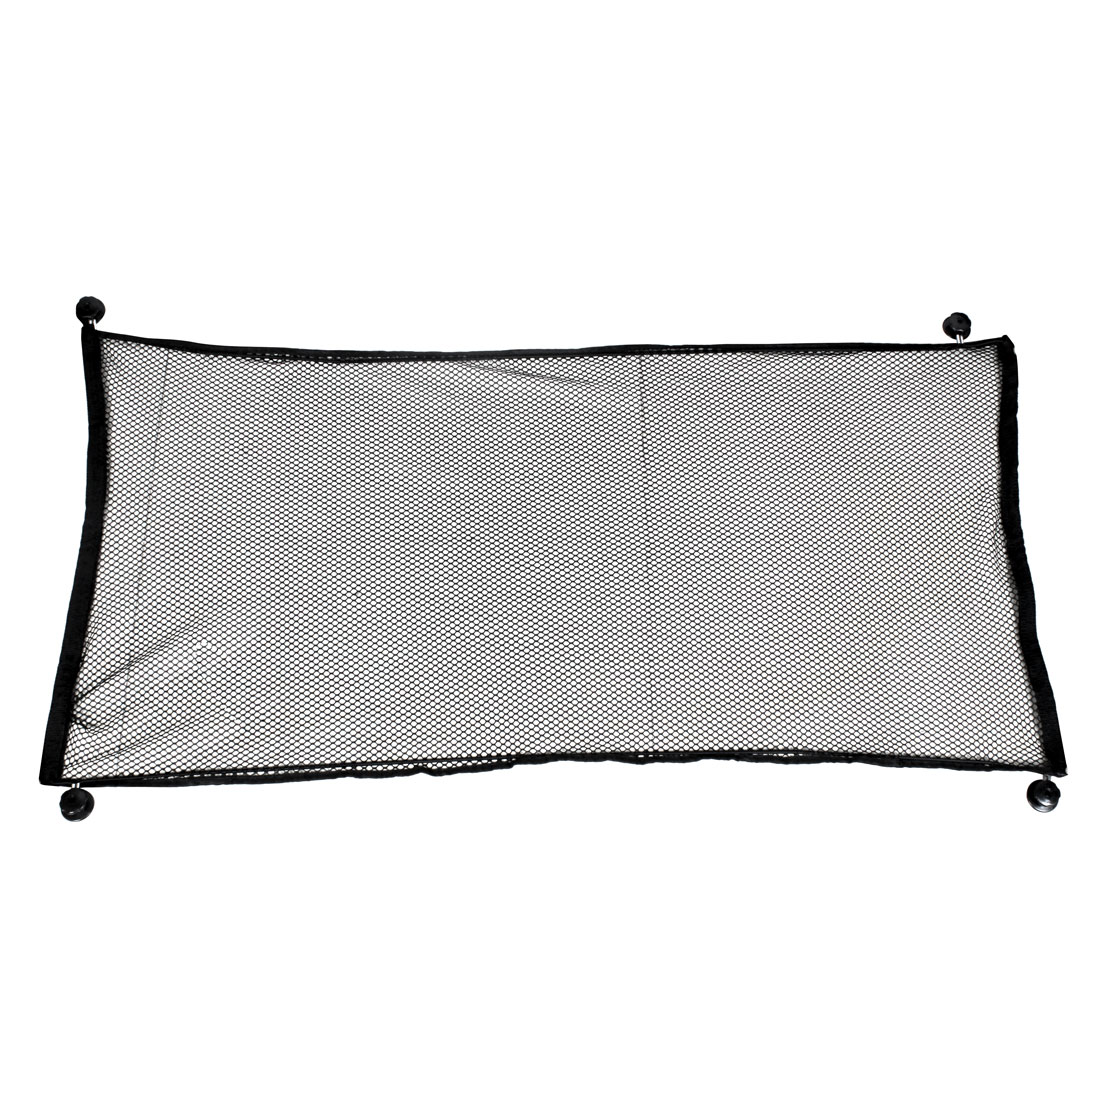 Auto Car Black Nylon Elastic Luggage Storage Net 120cm x 60cm